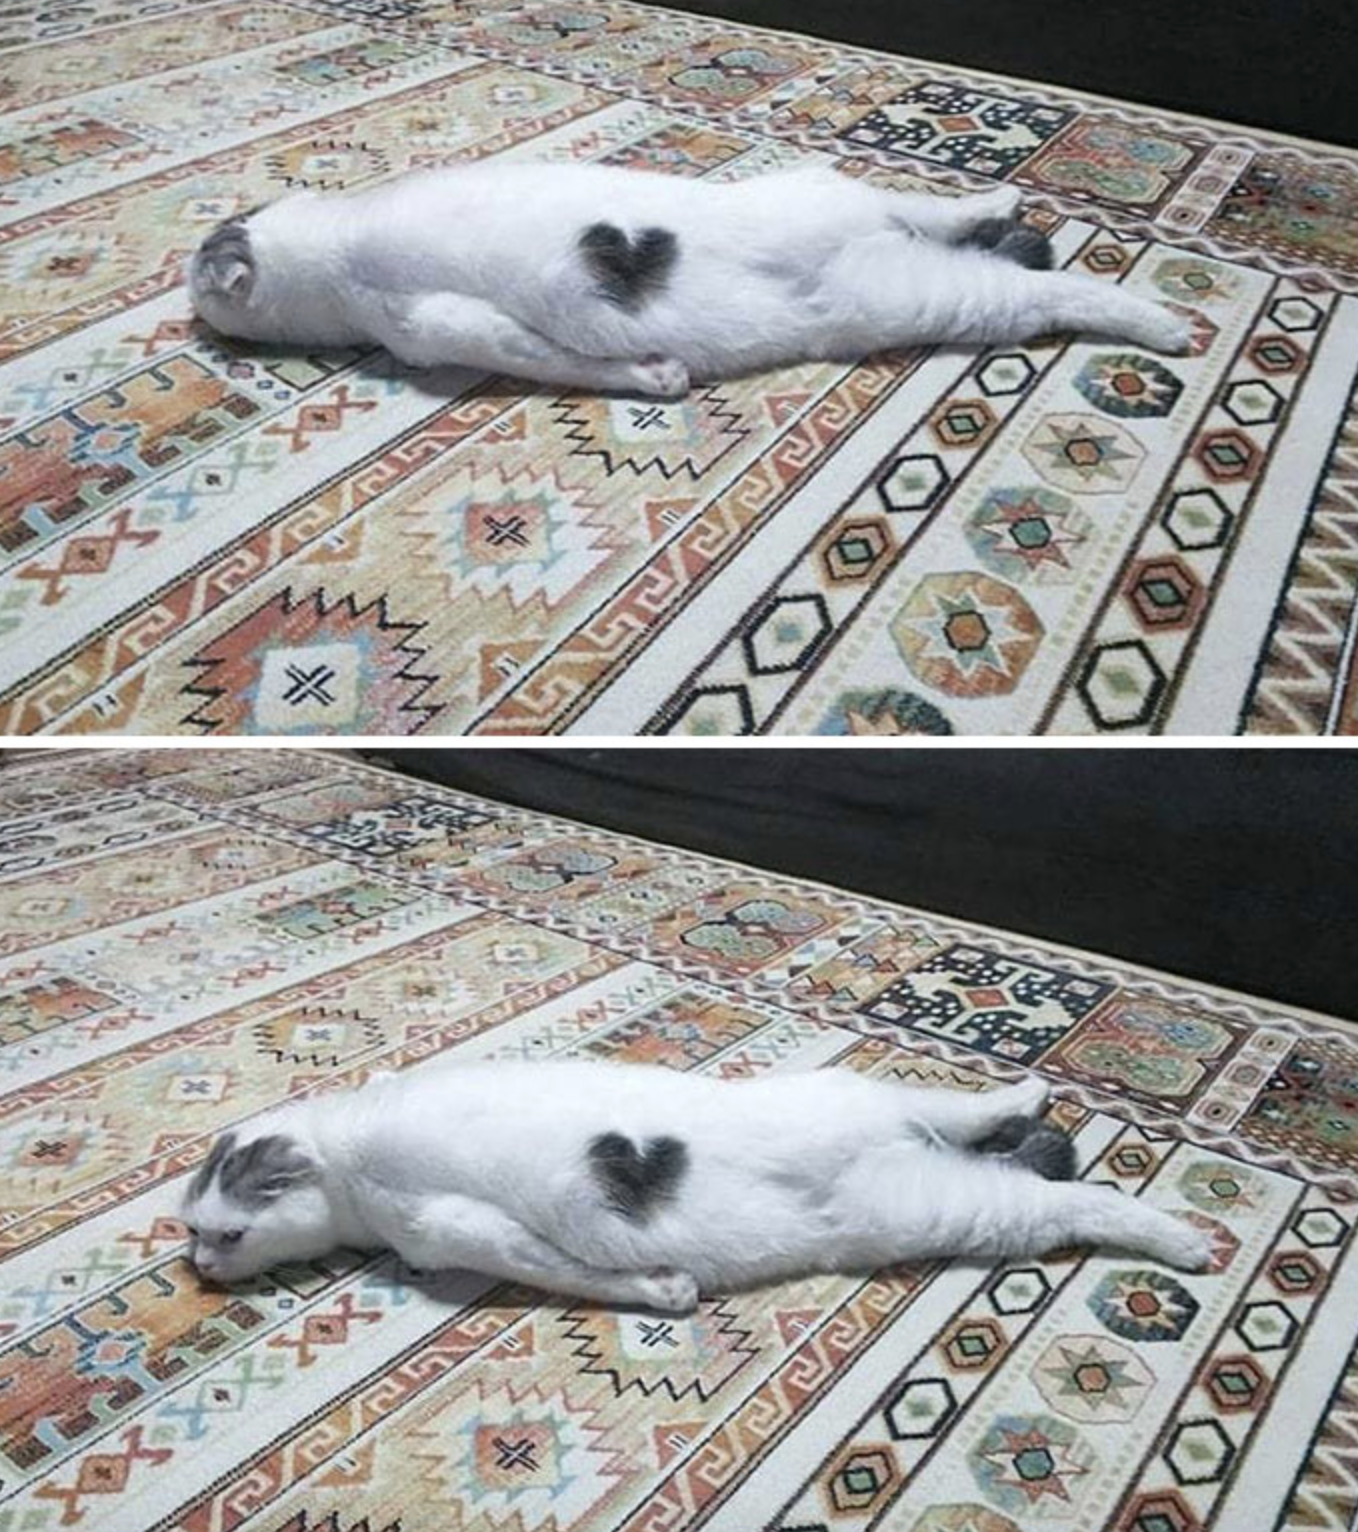 Cat laying sprawled out on the ground.